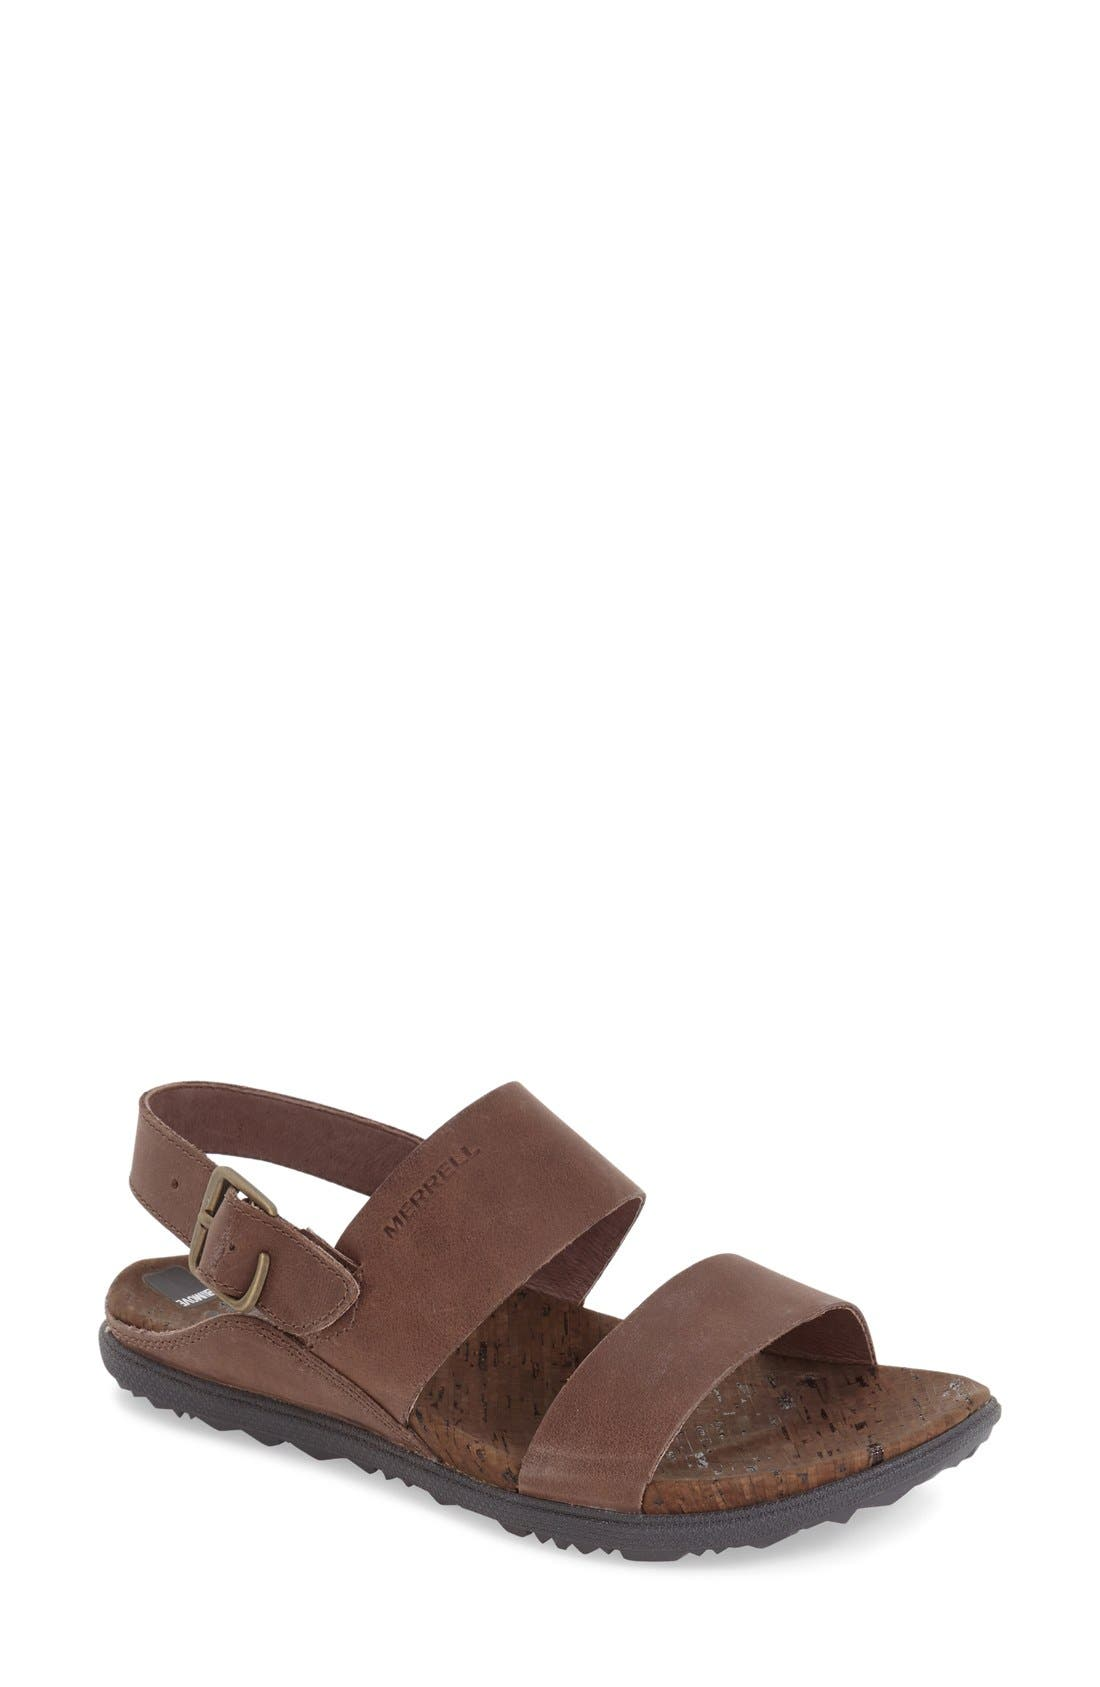 'Around Town' Slingback Sandal,                         Main,                         color, Brown Leather